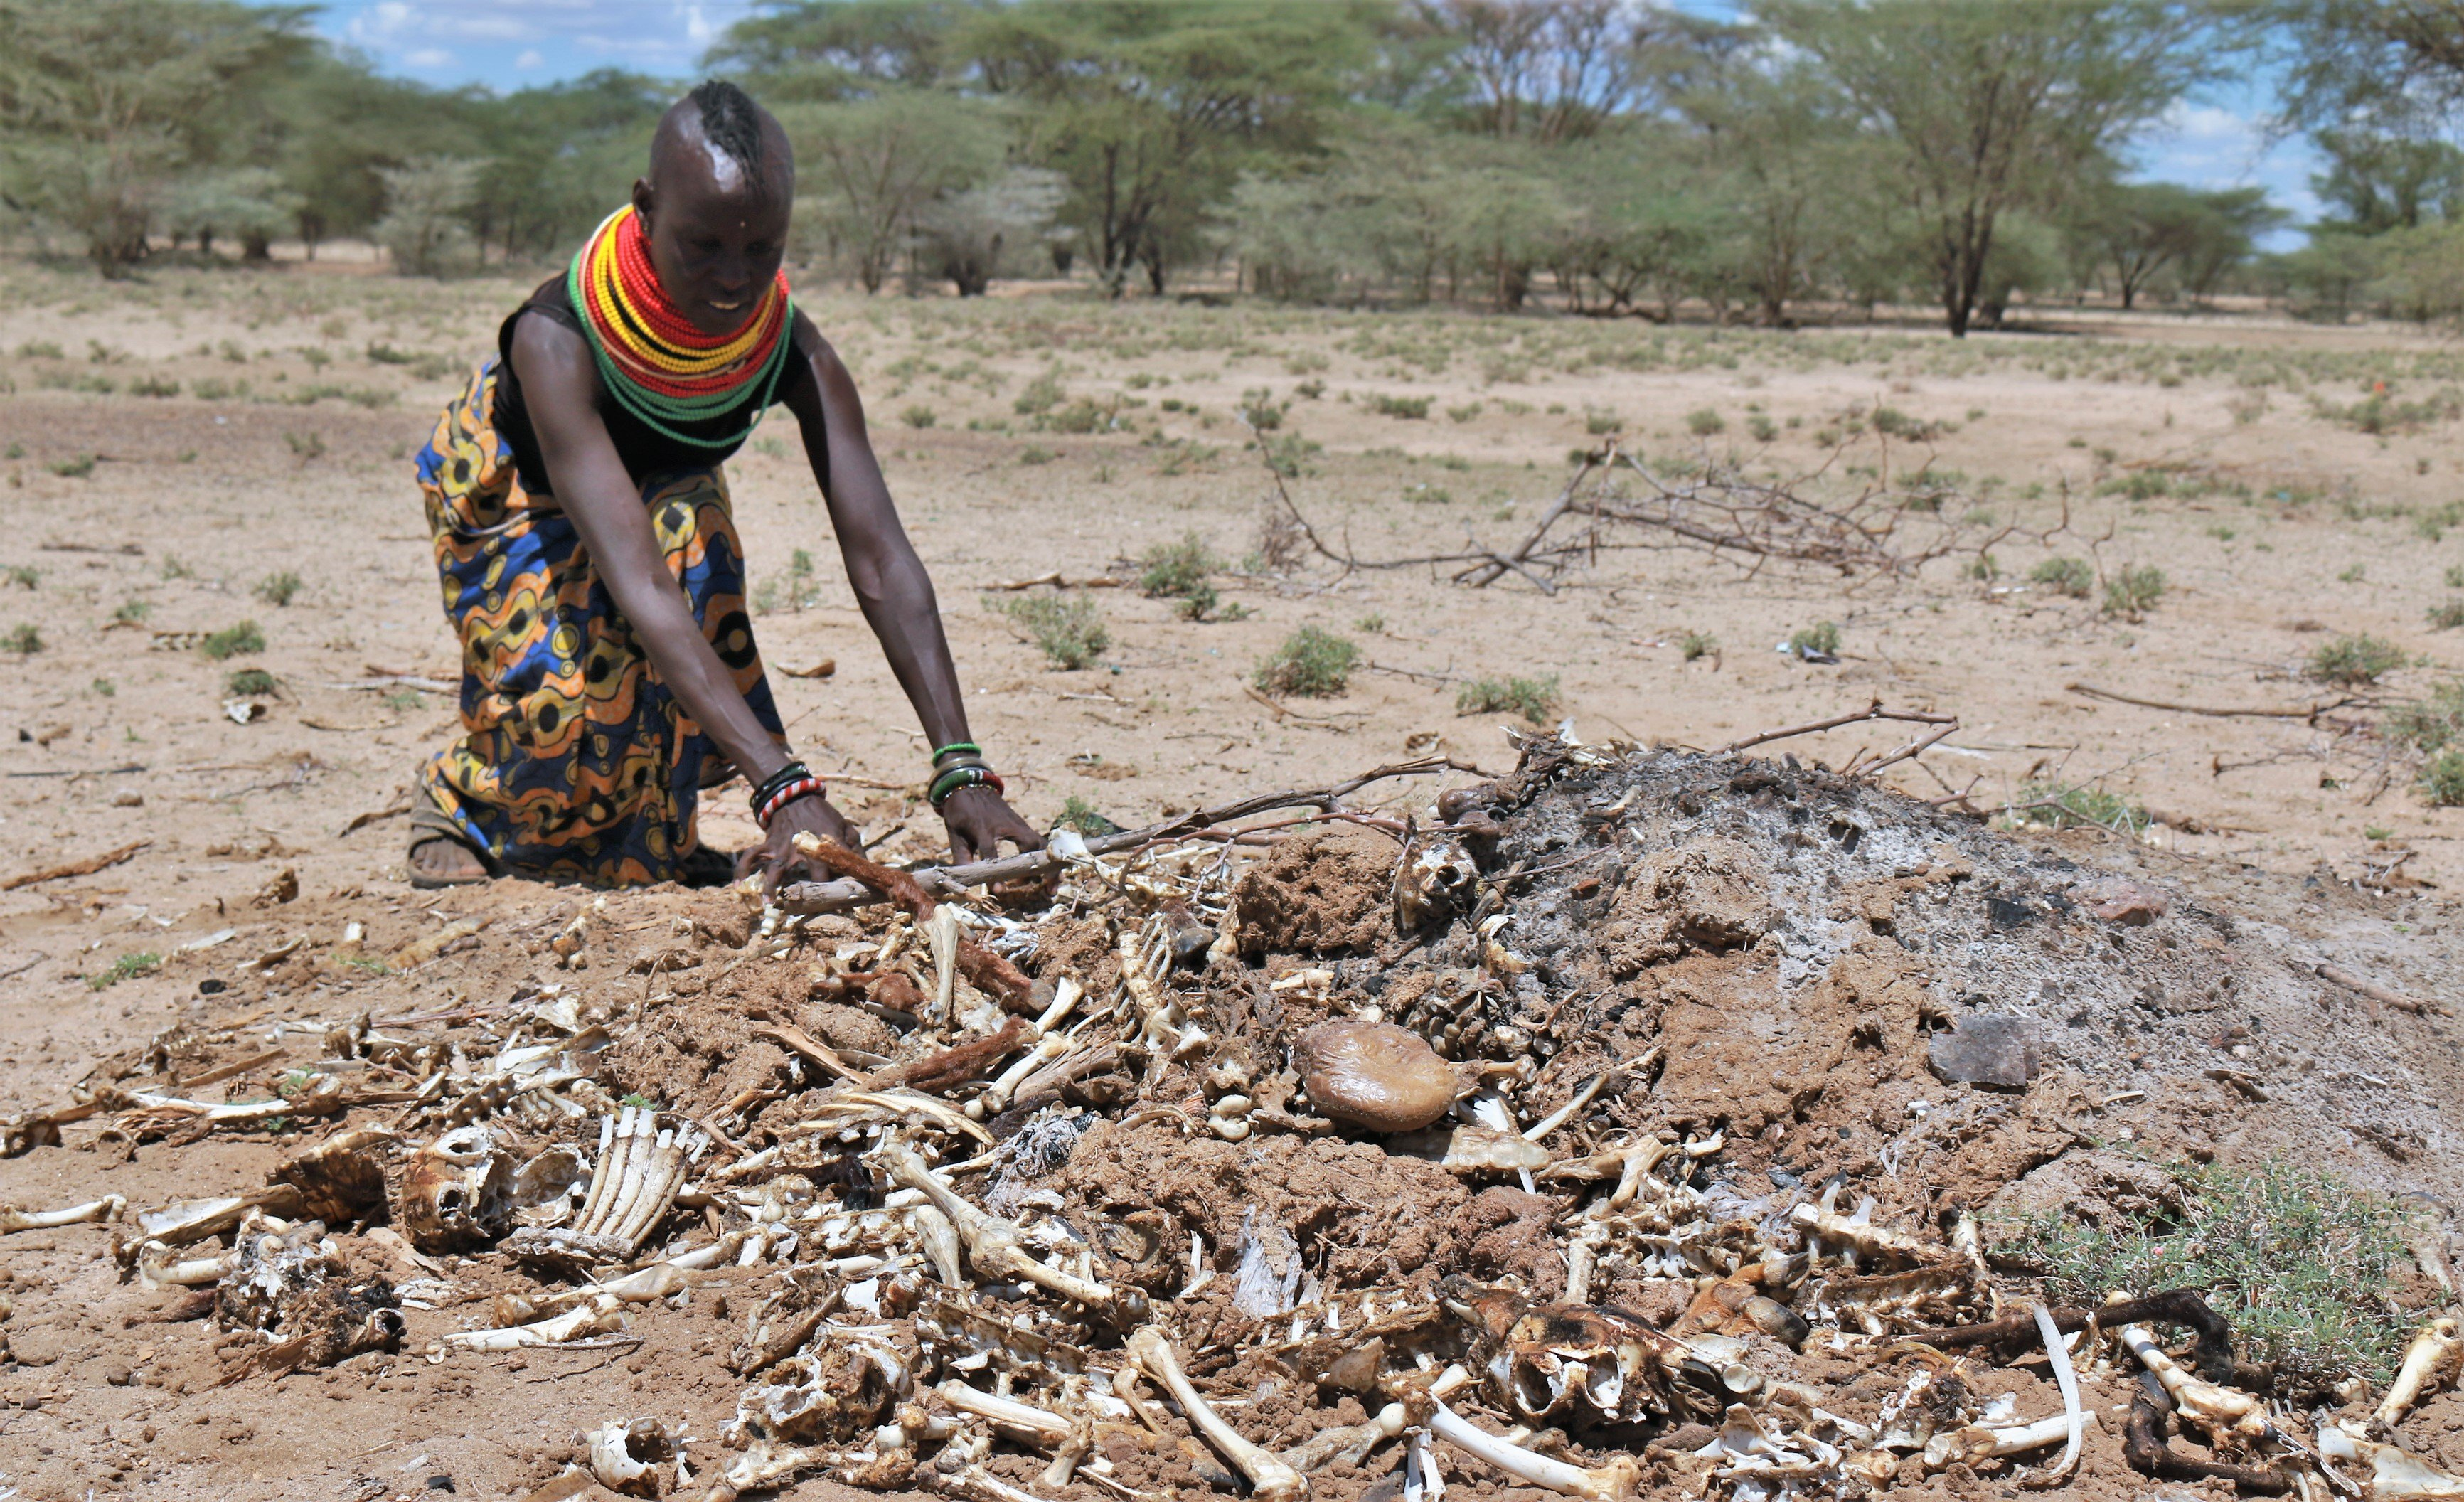 Turkana women with goat carcases